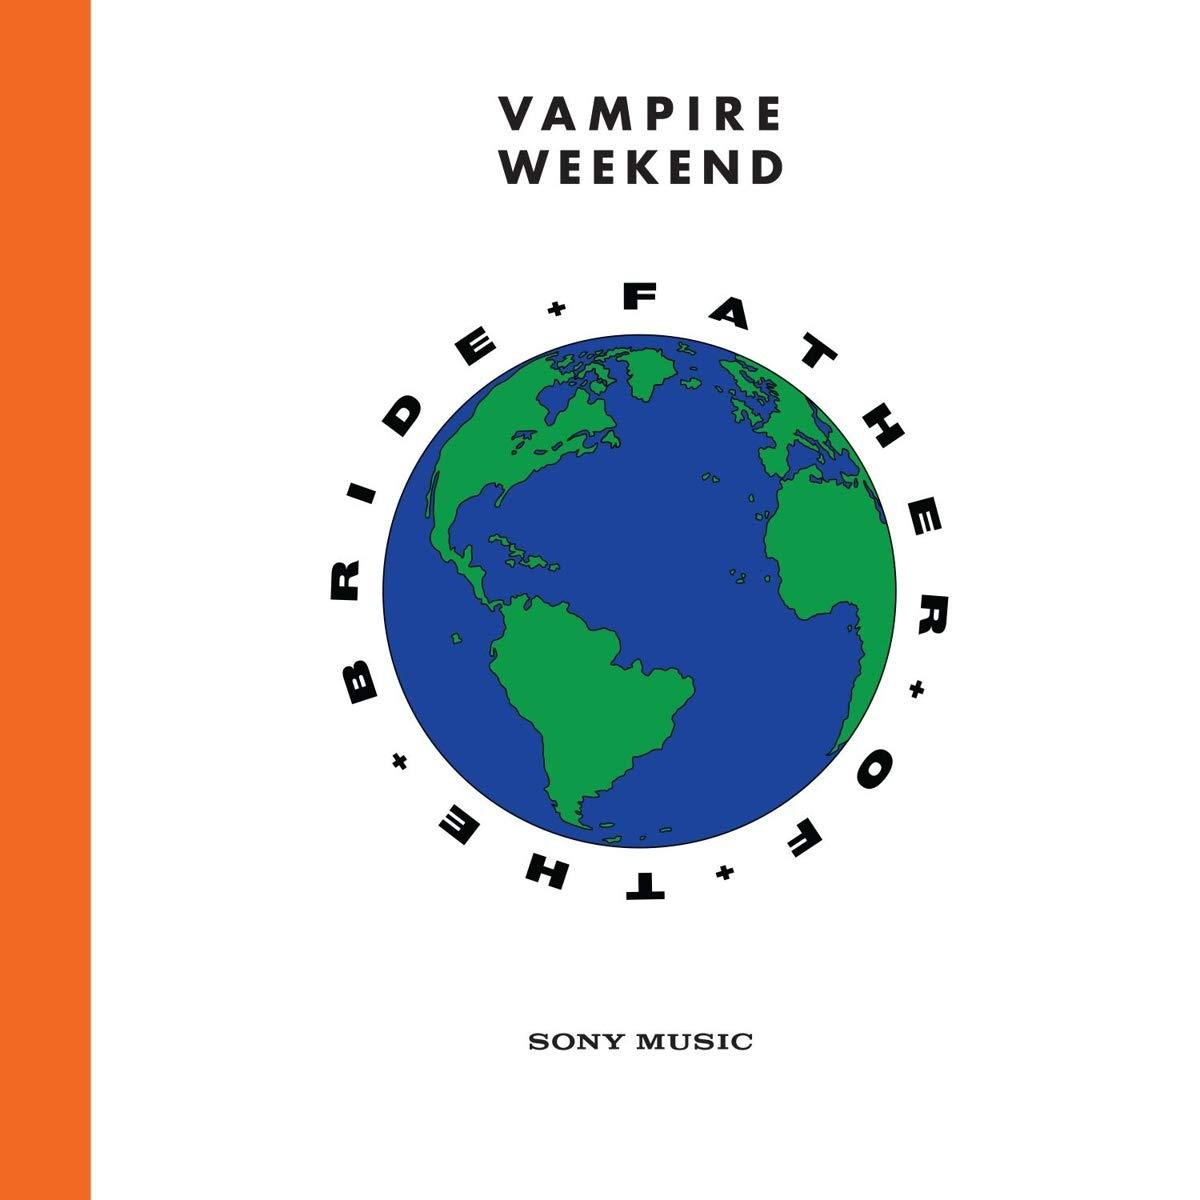 Vampire Weekend - Father Of The Bride [2LP] (embossed gatefold, 24x36'' poster) (Vinyl) - Urban Vinyl | Records, Headphones, and more.